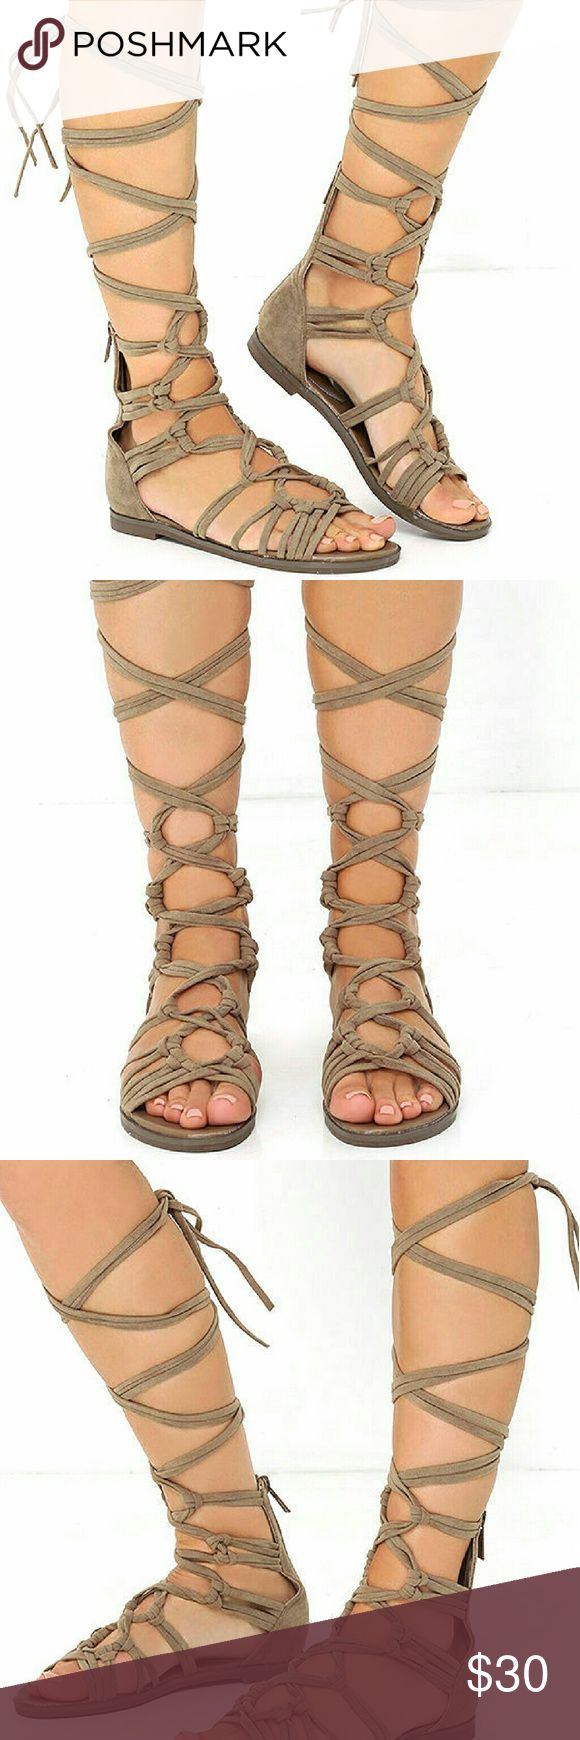 "NWOT Taupe Tall Suede Lace Up Gladiator Sandals Peep toe, VEGAN suede knots and crosses up to long laces that wrap and tie around the leg. 5"" zipper at back, 0.5"" rubber heel, cushioned insole, nonskid rubber sole. All vegan friendly, man made materials. Never worn. Shoes Sandals"